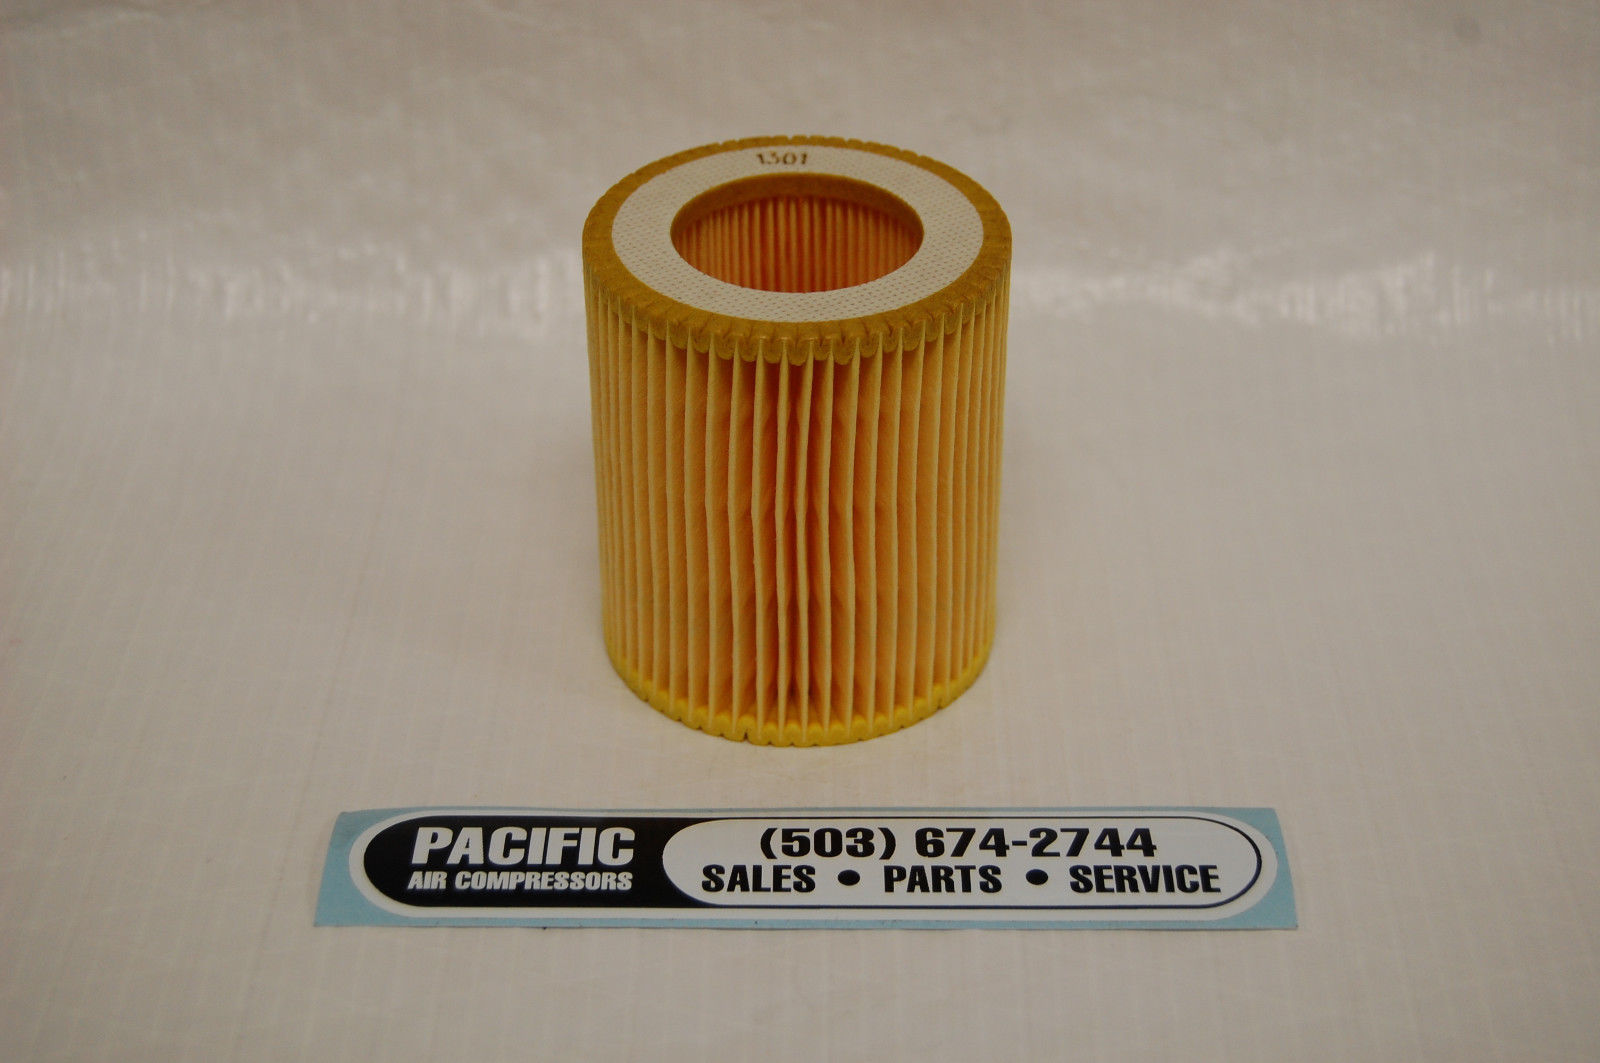 N 25950 BAUER / ROTORCOMP REPLACEMENT AIR FILTER AIR COMPRESSOR PARTS